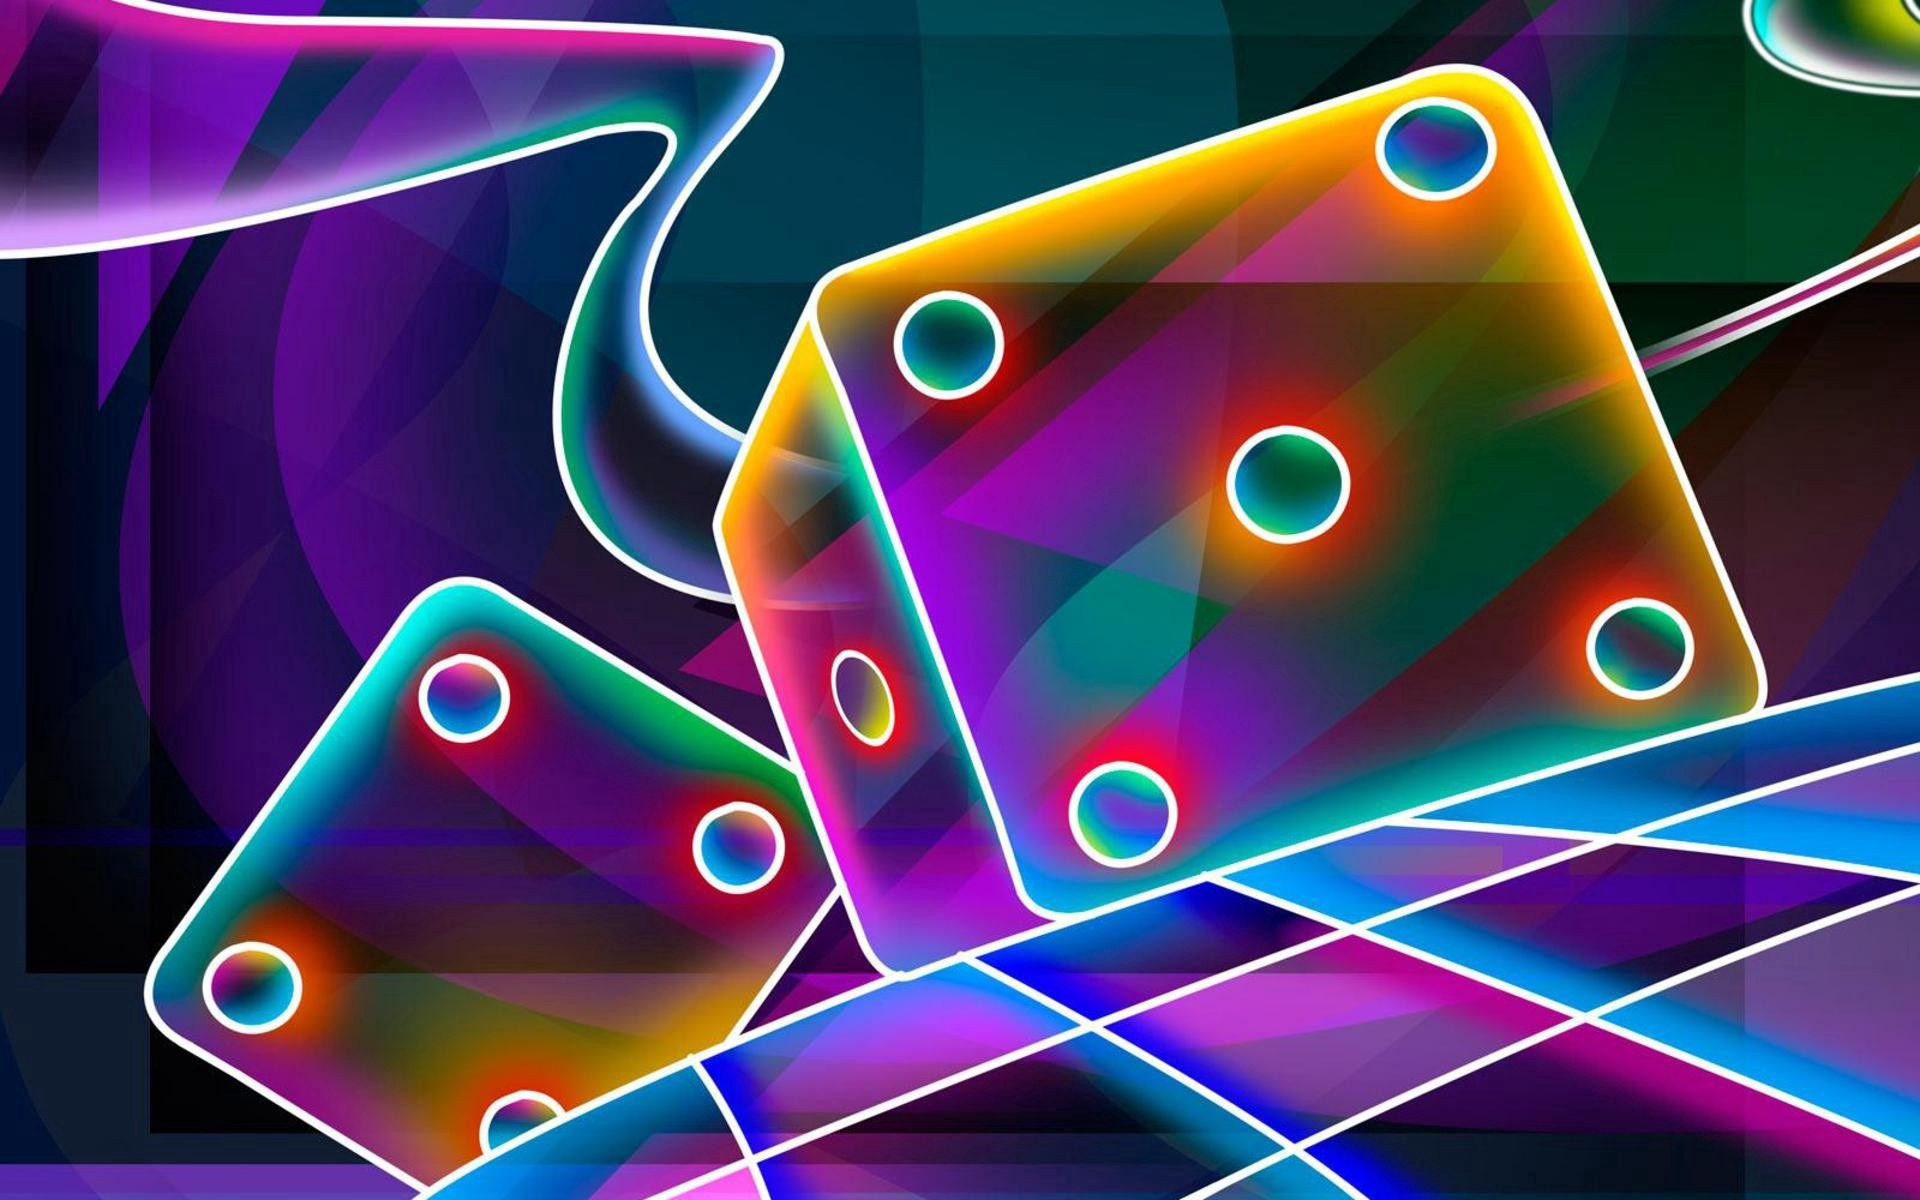 100392 free wallpaper 240x320 for phone, download images 3D, Abstract, Neon, Dice, Cube, Bones 240x320 for mobile